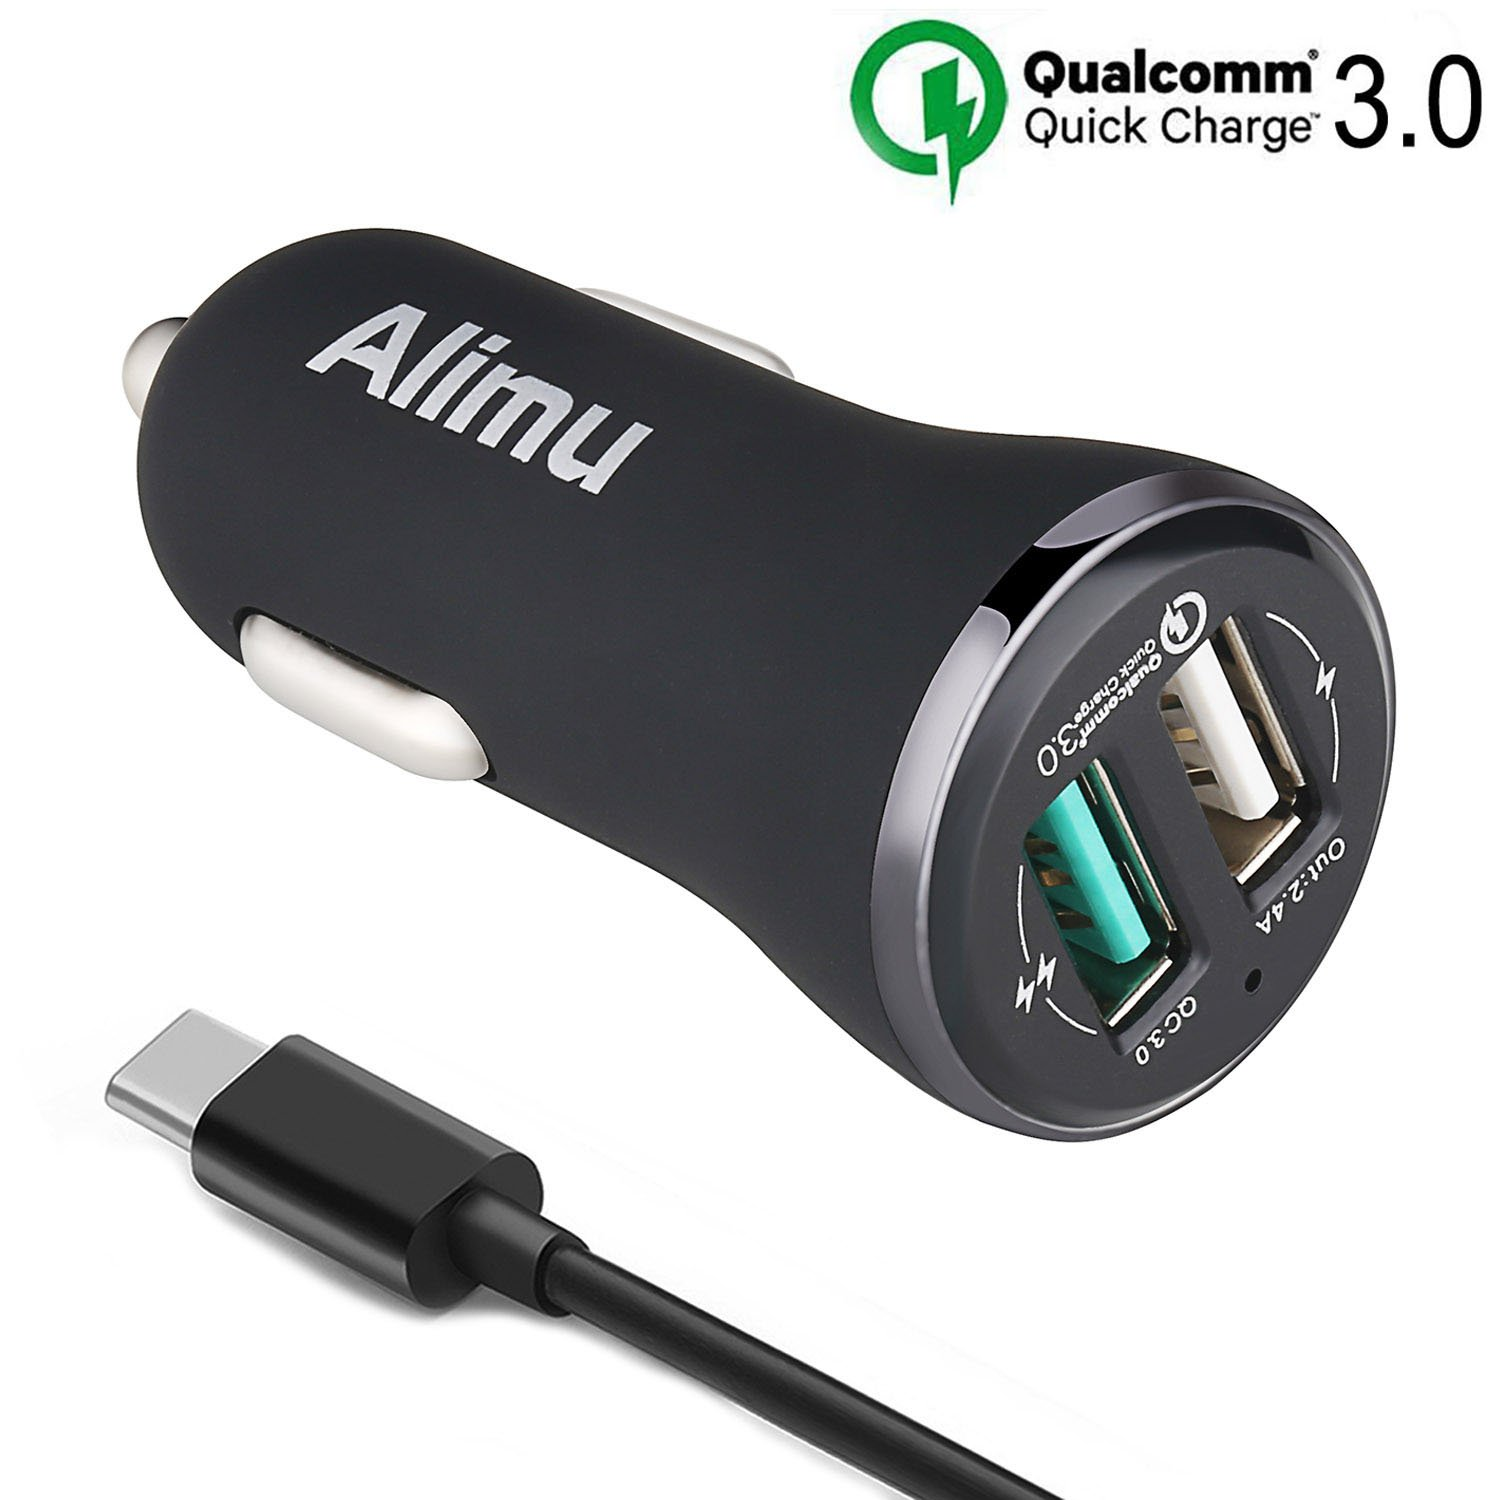 Quick Charge 3.0 USB Type C Car Charger, Alimu Dual USB Rapid Fast Car Charger 30W and USB C Cable Works with LG G5,G6,V20,V30,HTC 10 U11,Samsung Galaxy S8 S9 Plus,Note 8,iPad,iPhone and More